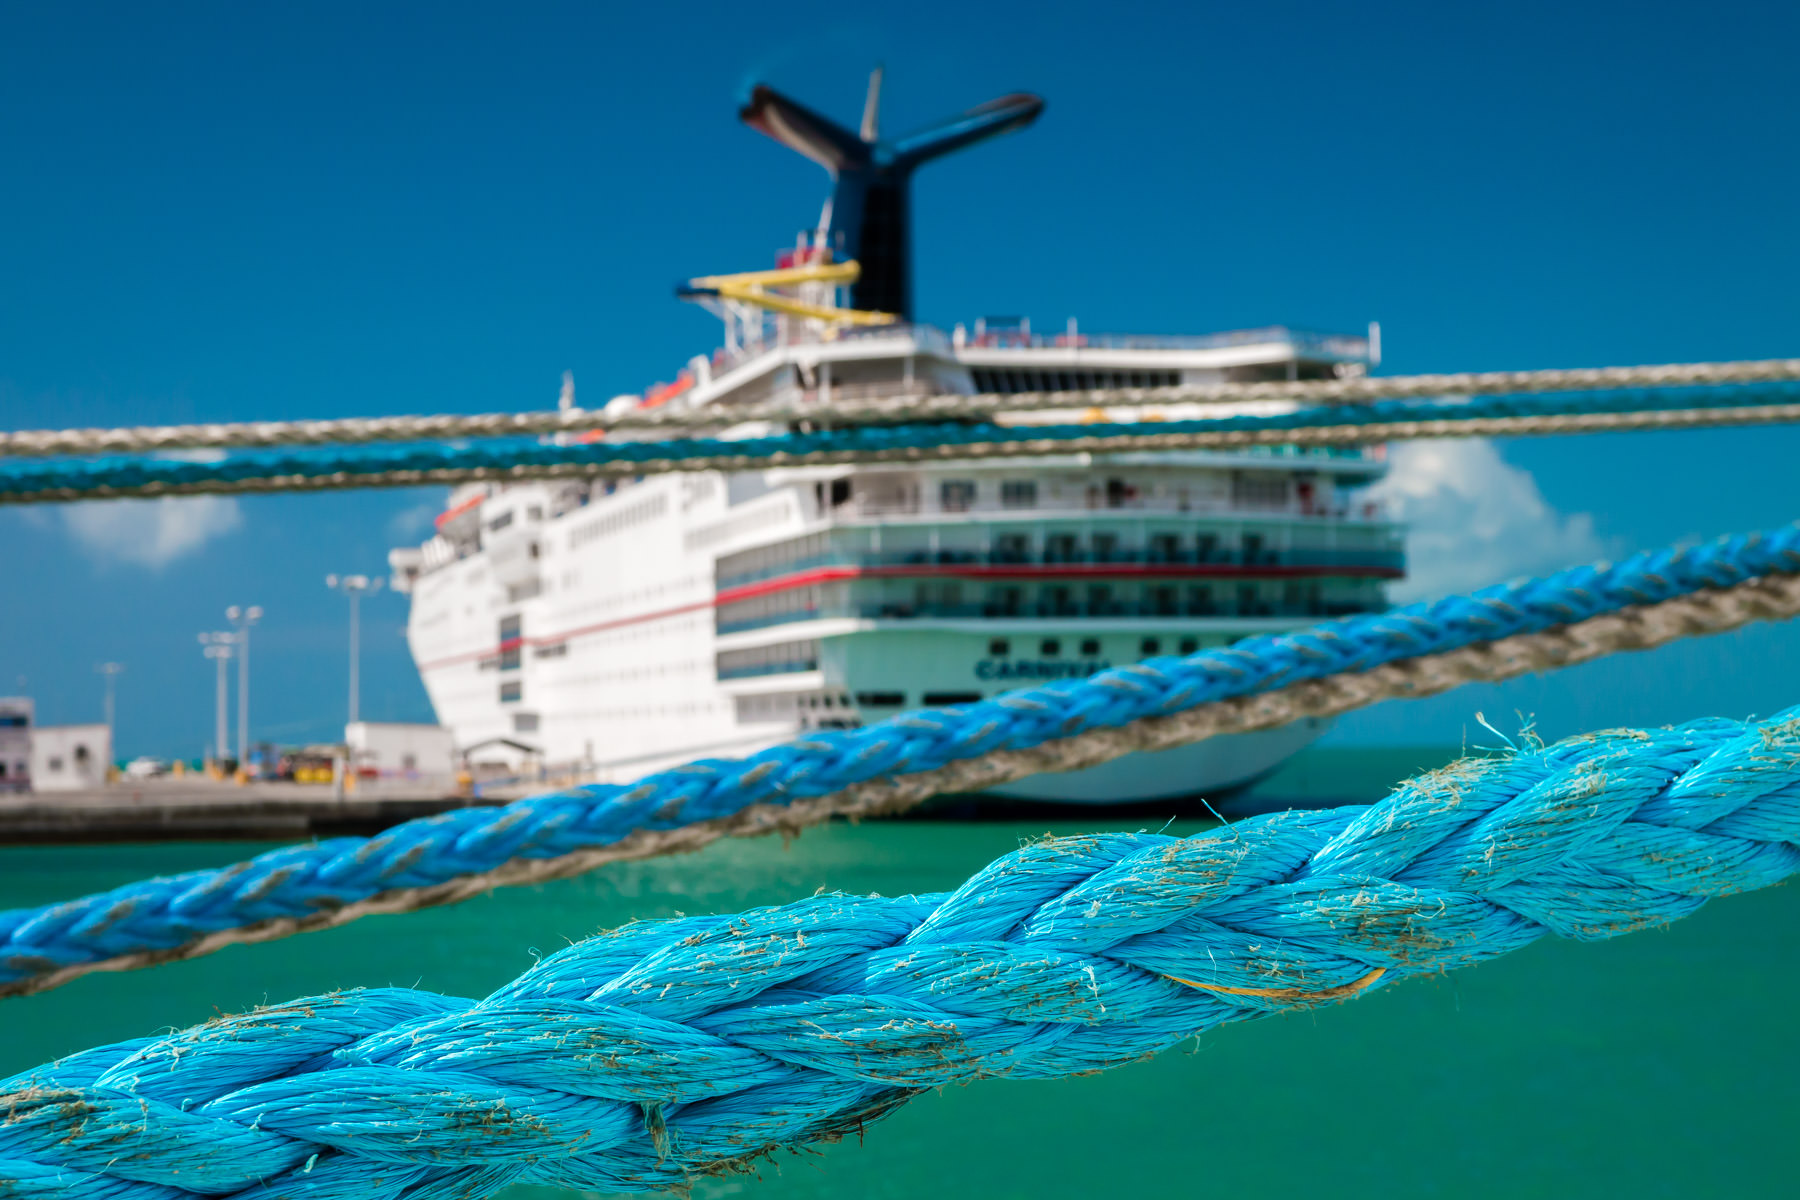 Hawsers tying up an adjacent cruise ship partially obscure the Carnival Ecstasy, dockside in Key West, Florida.